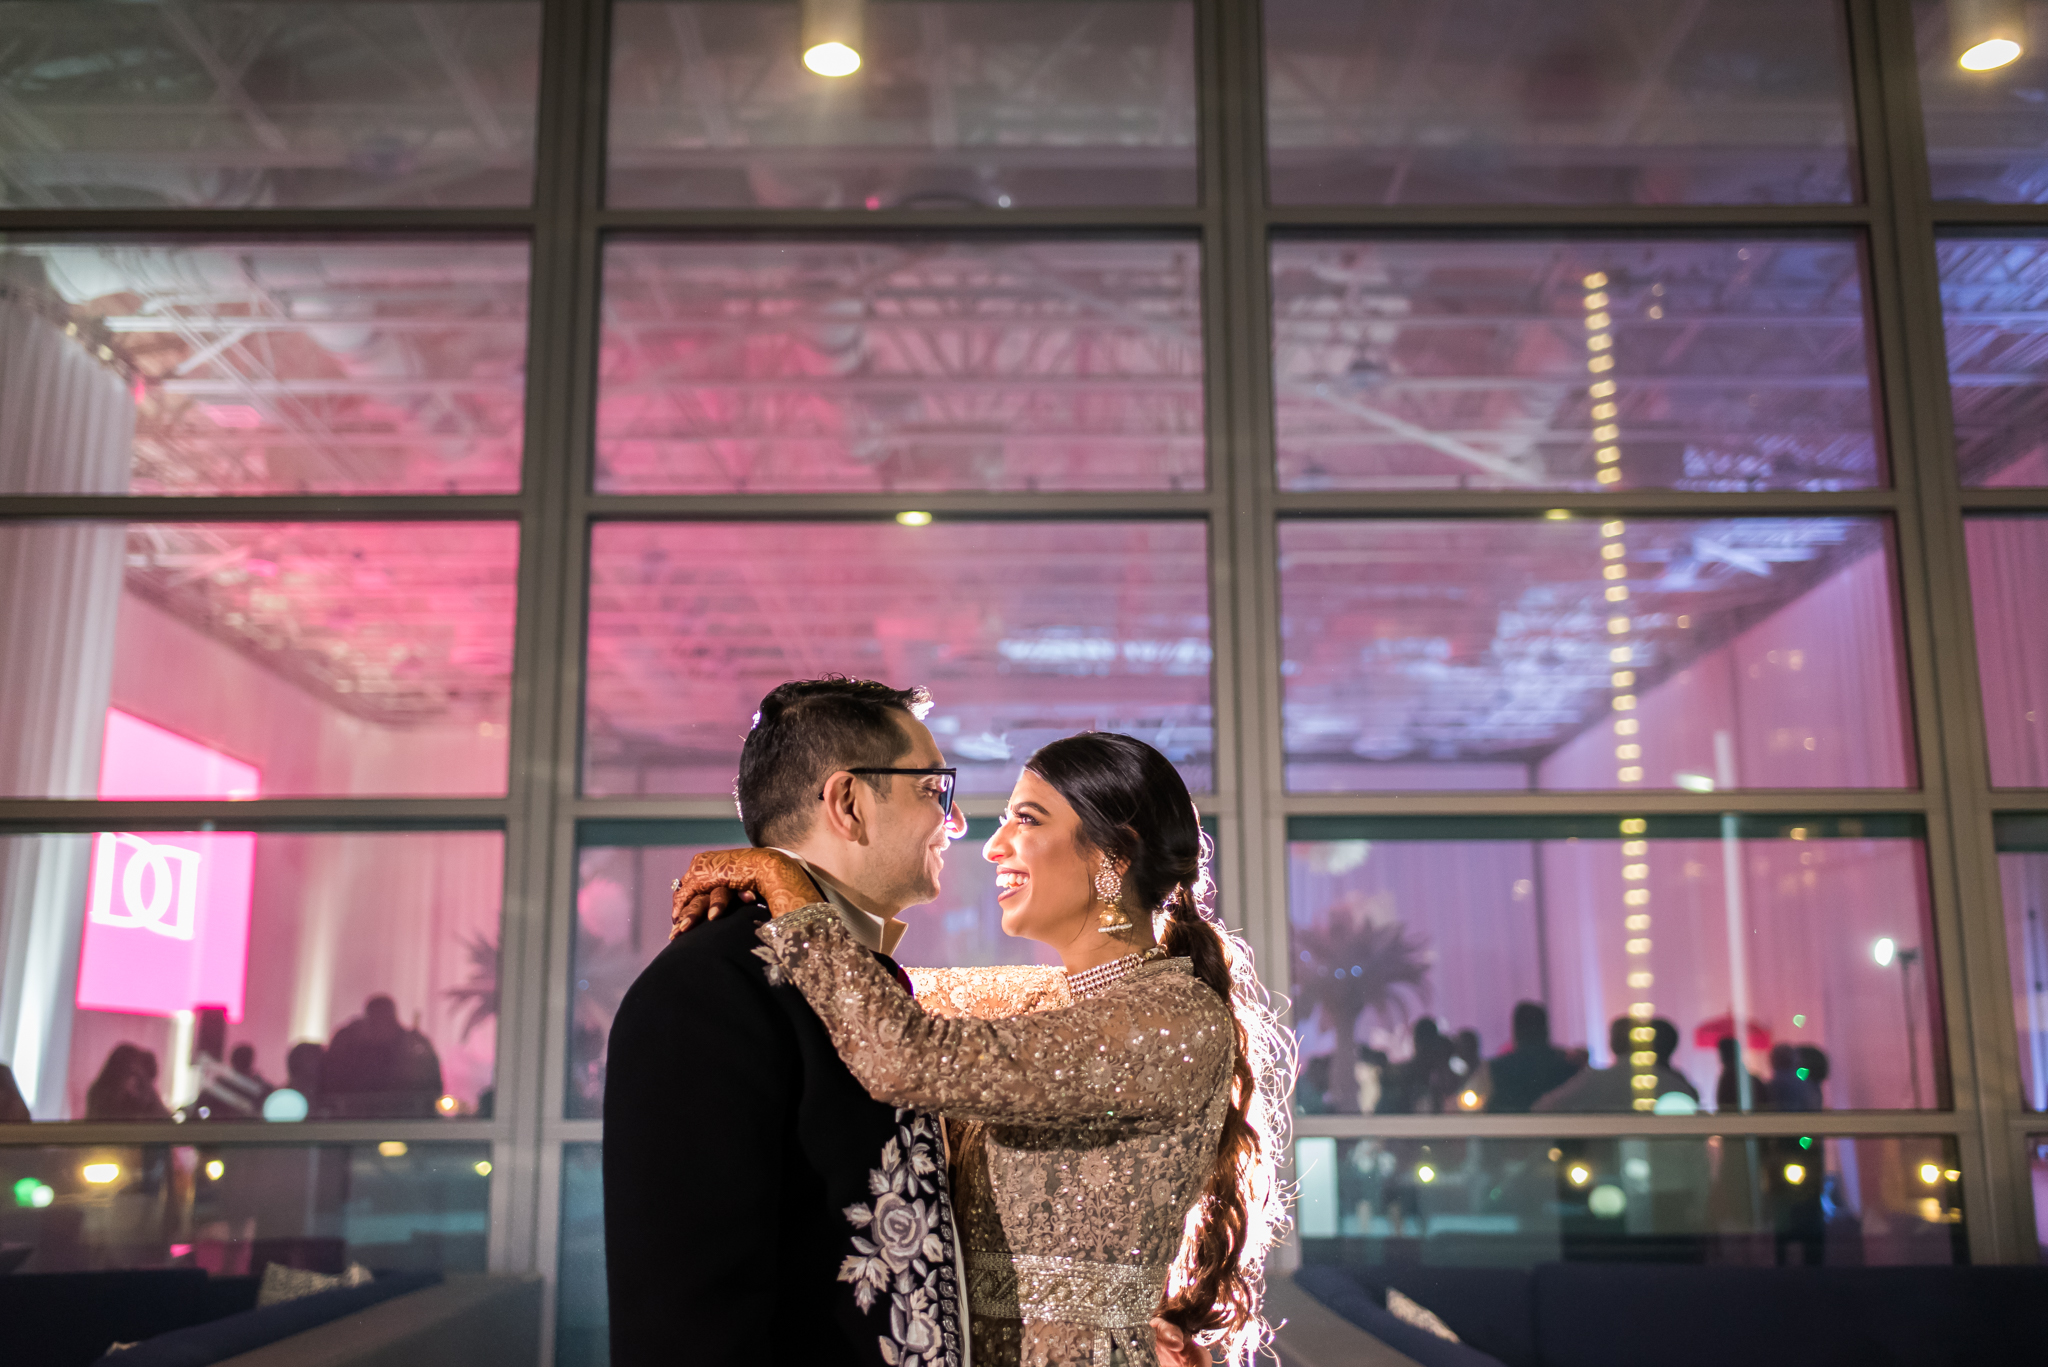 SOUTH ASIAN INDIAN WEDDING:  RITZ CARLTON KEY BISCAYNE, FLORIDA